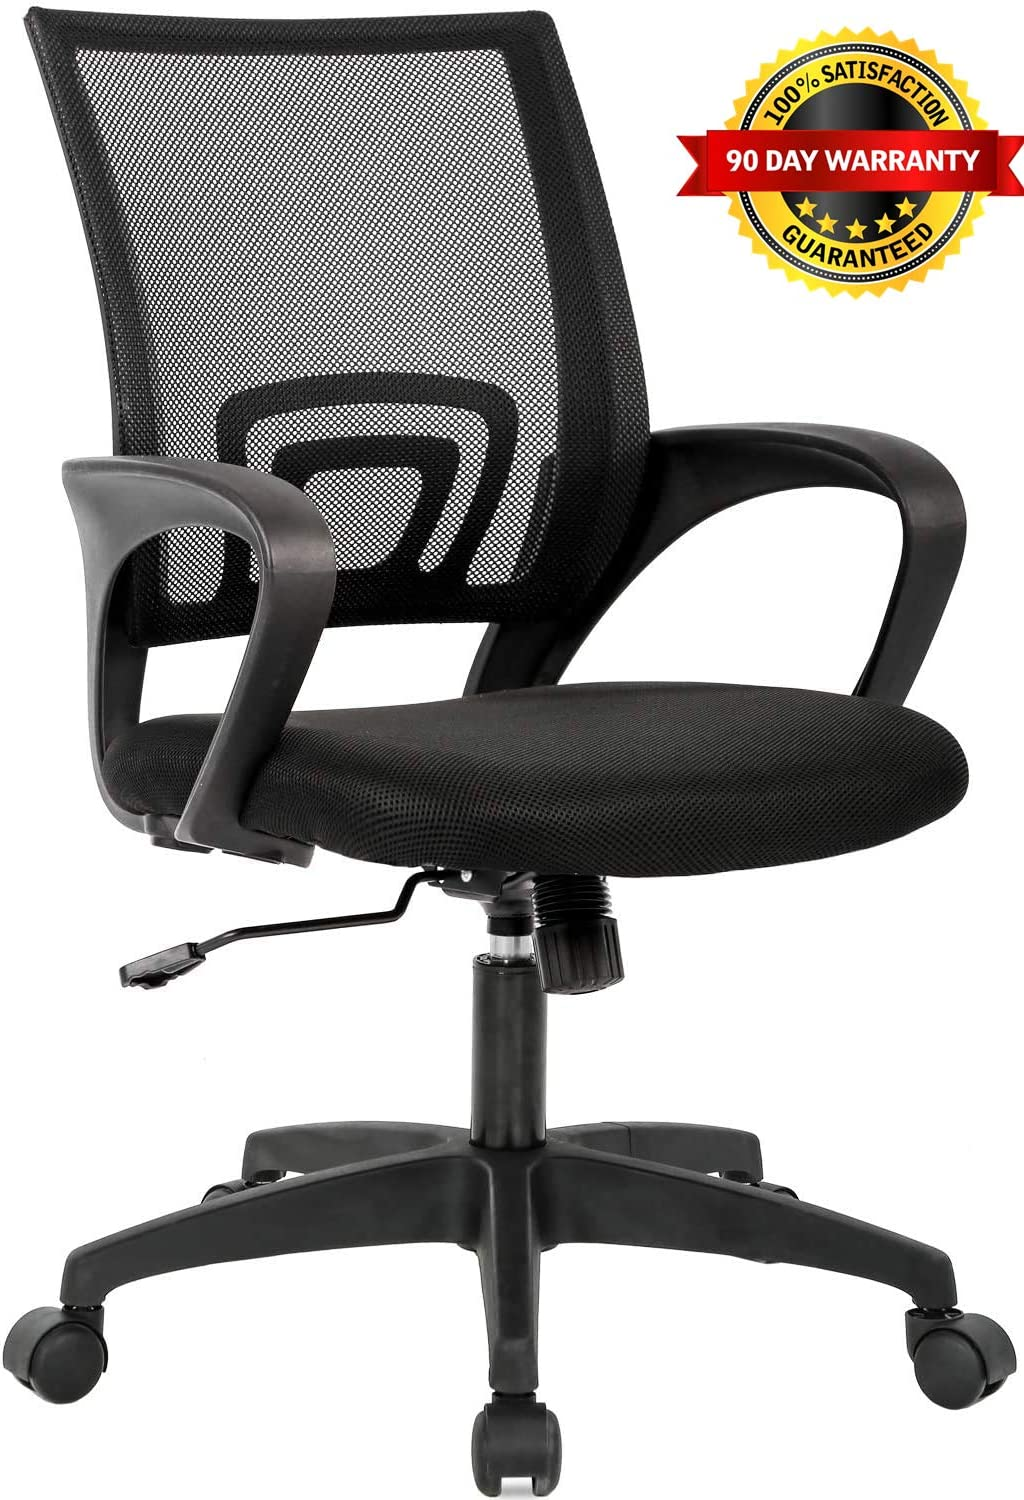 LIONROAR Office Chair Computer Chair Task Chair with Lumbar Support Armrest Breathable Mesh Back Adjustable Ergonomic Office Chair (Black)